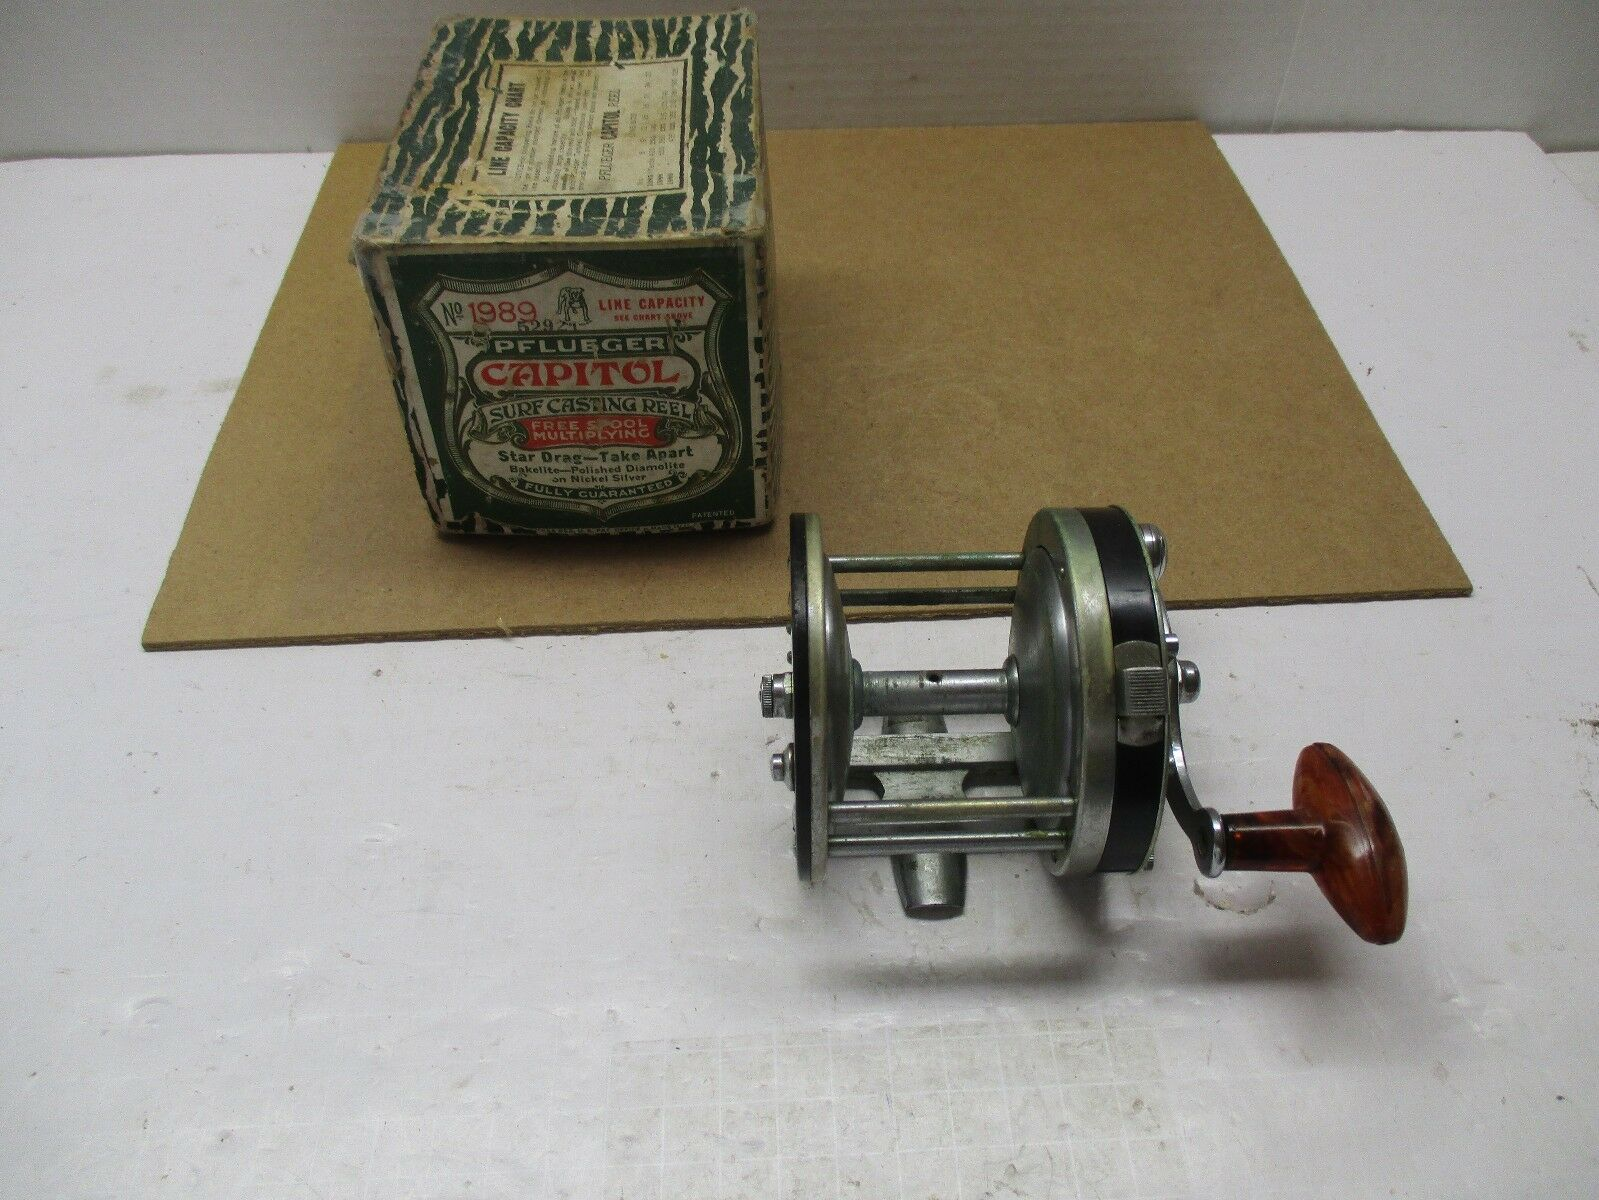 Vintage Pflueger Capitol No. 1989 Fishing Reel - Made in the USA      IN THE BOX